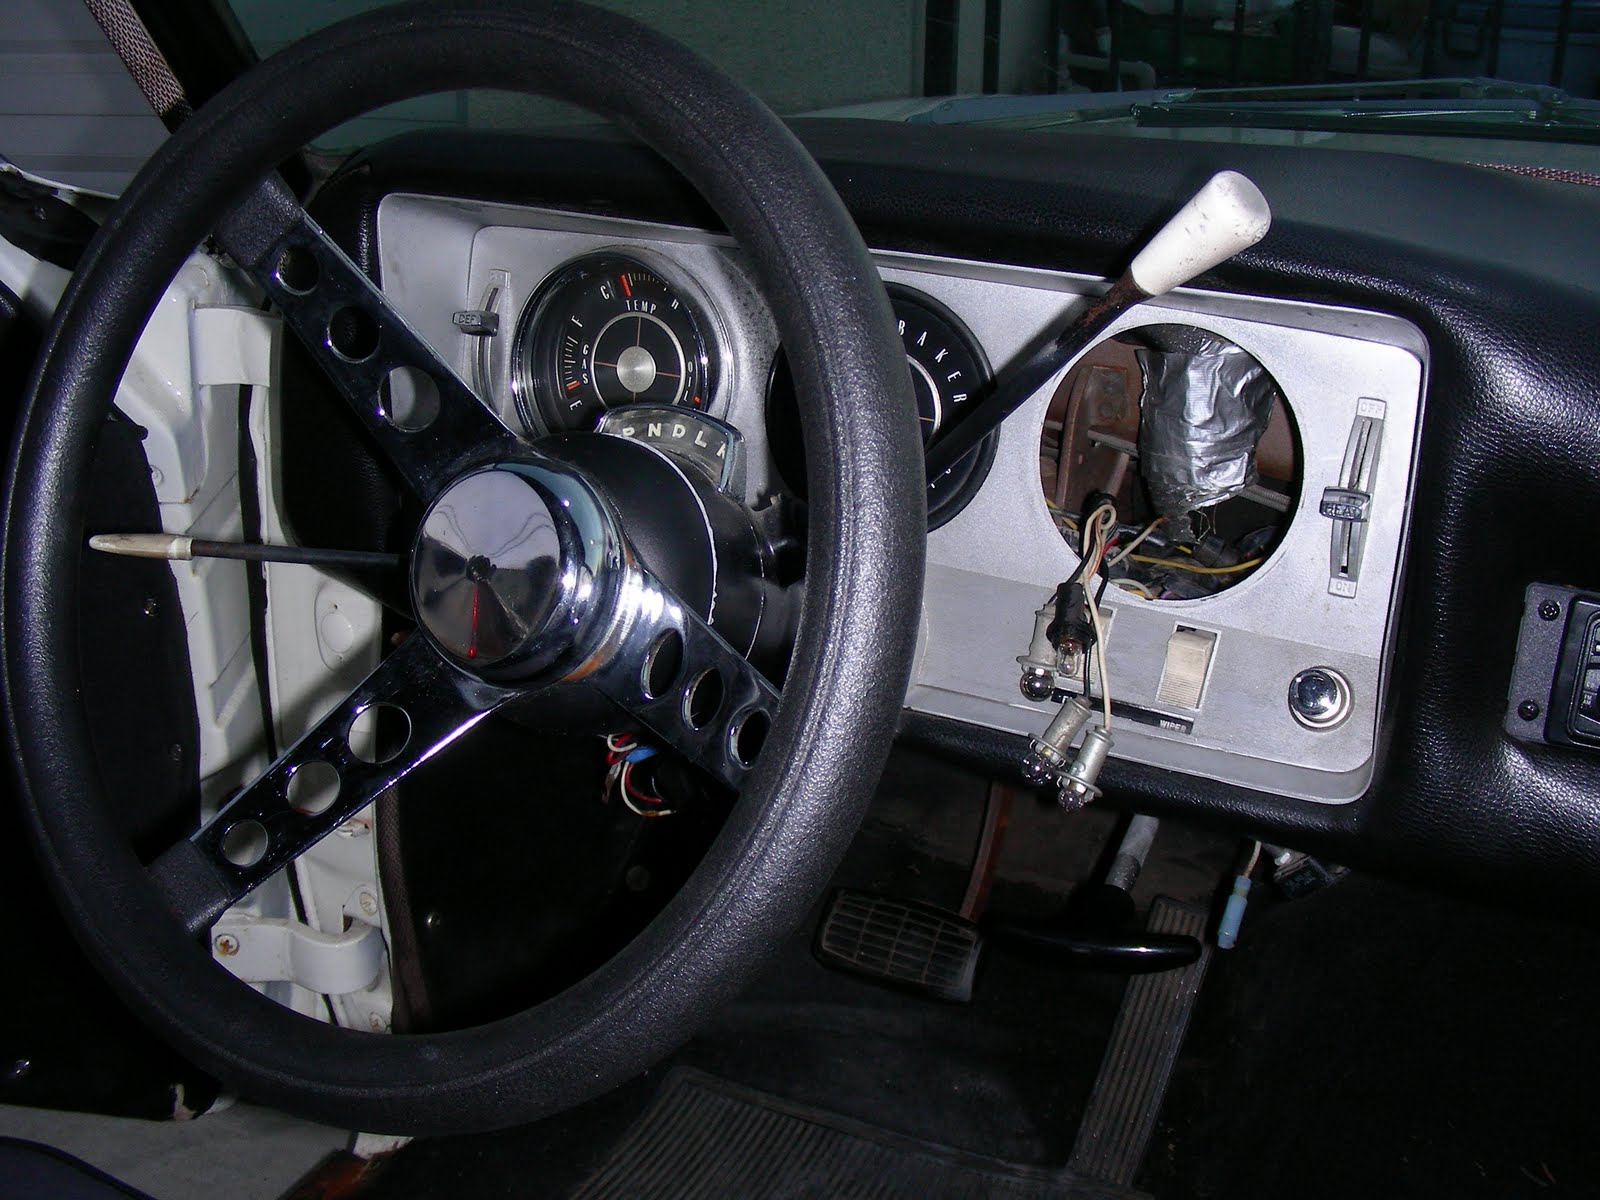 My Horn Is Blasting Againshort Jeep Wrangler Button Wiring Uplug The Wire At And Attach A Test Light There Quieter This Way Ground Each Time You Push Will Always Hear Relay